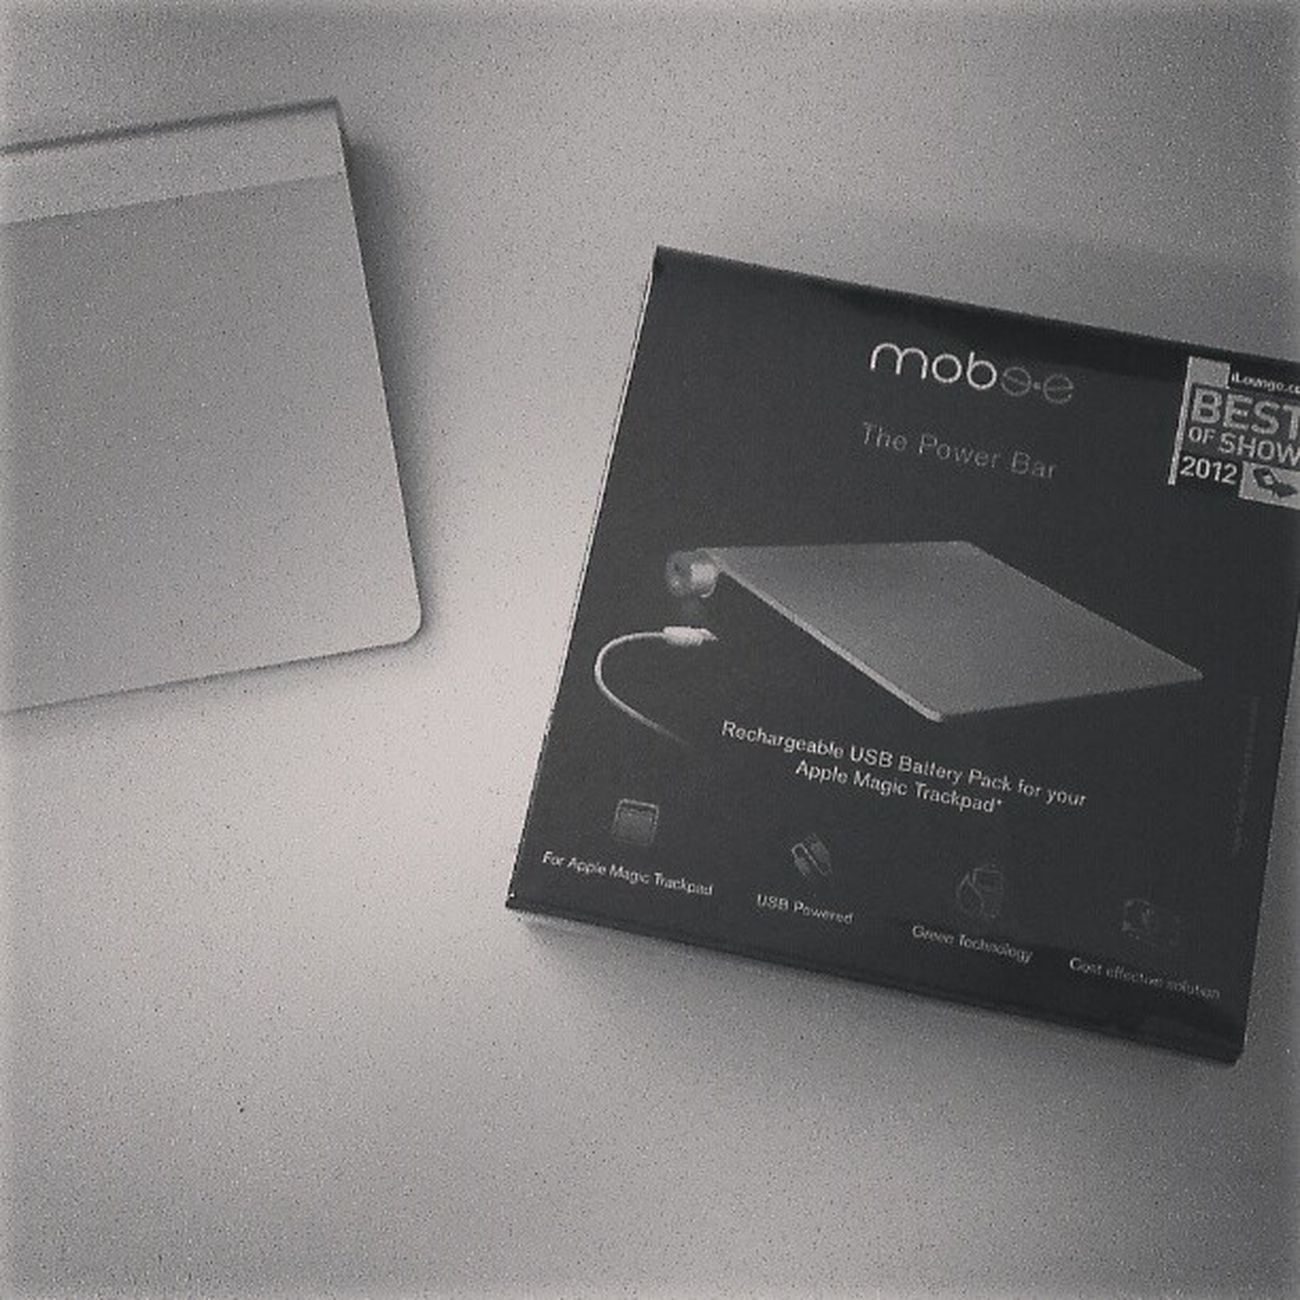 so my Mobee power bar has arrived :D no more AA's for my magic trackpad!